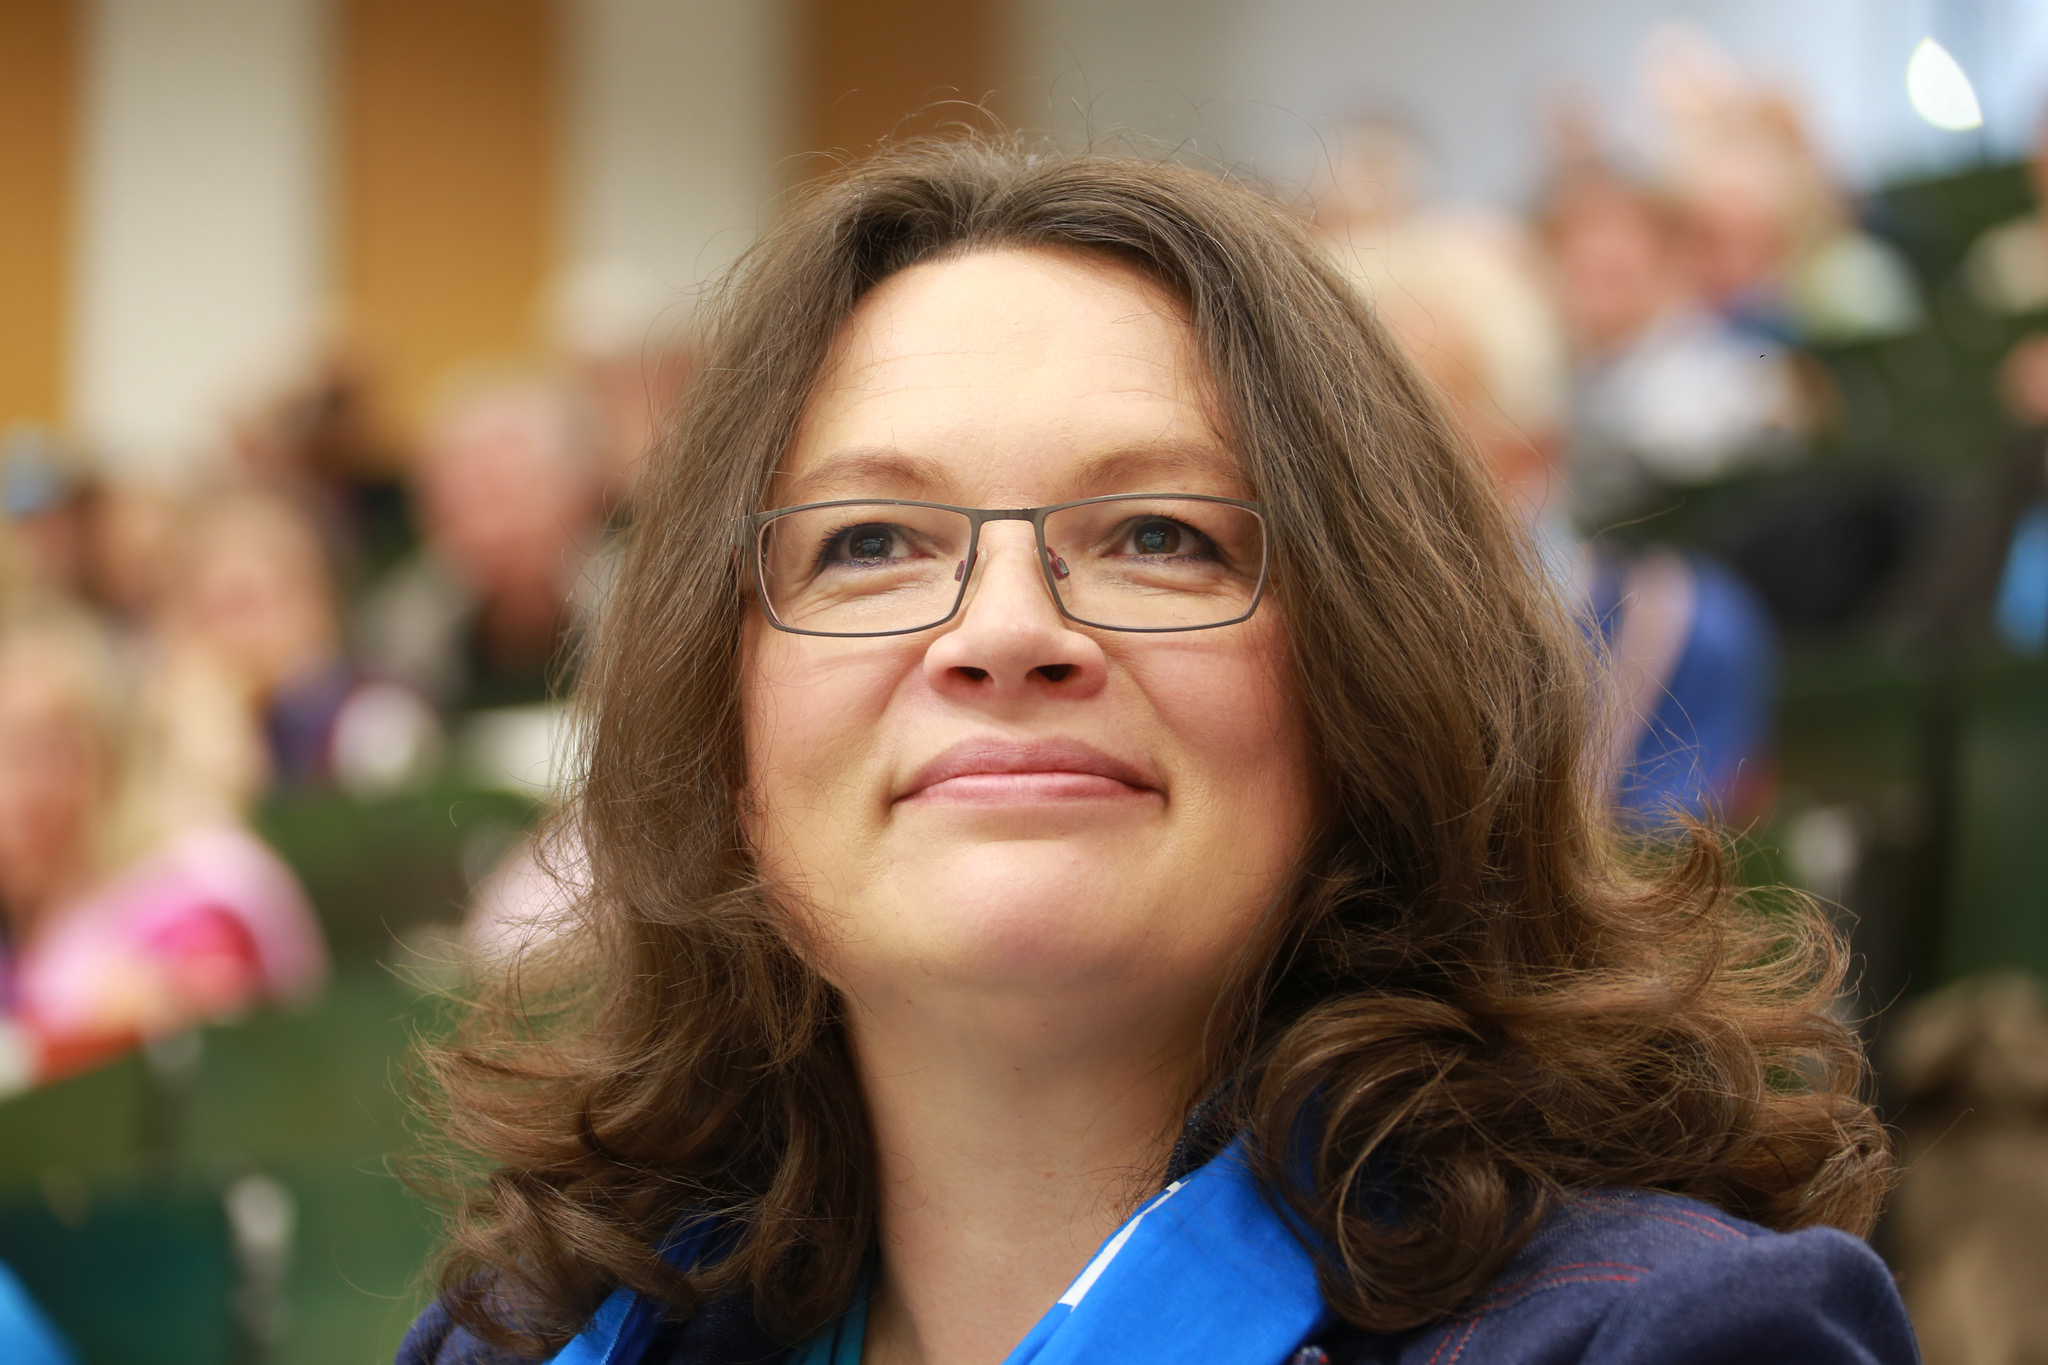 German Labour Minister Andrea Nahles (Social Democratic Party) has reason to celebrate: on Thursday (3 July) the Bundestag approved Germany's first universal minimum wage. [blu-news.org/Flickr]